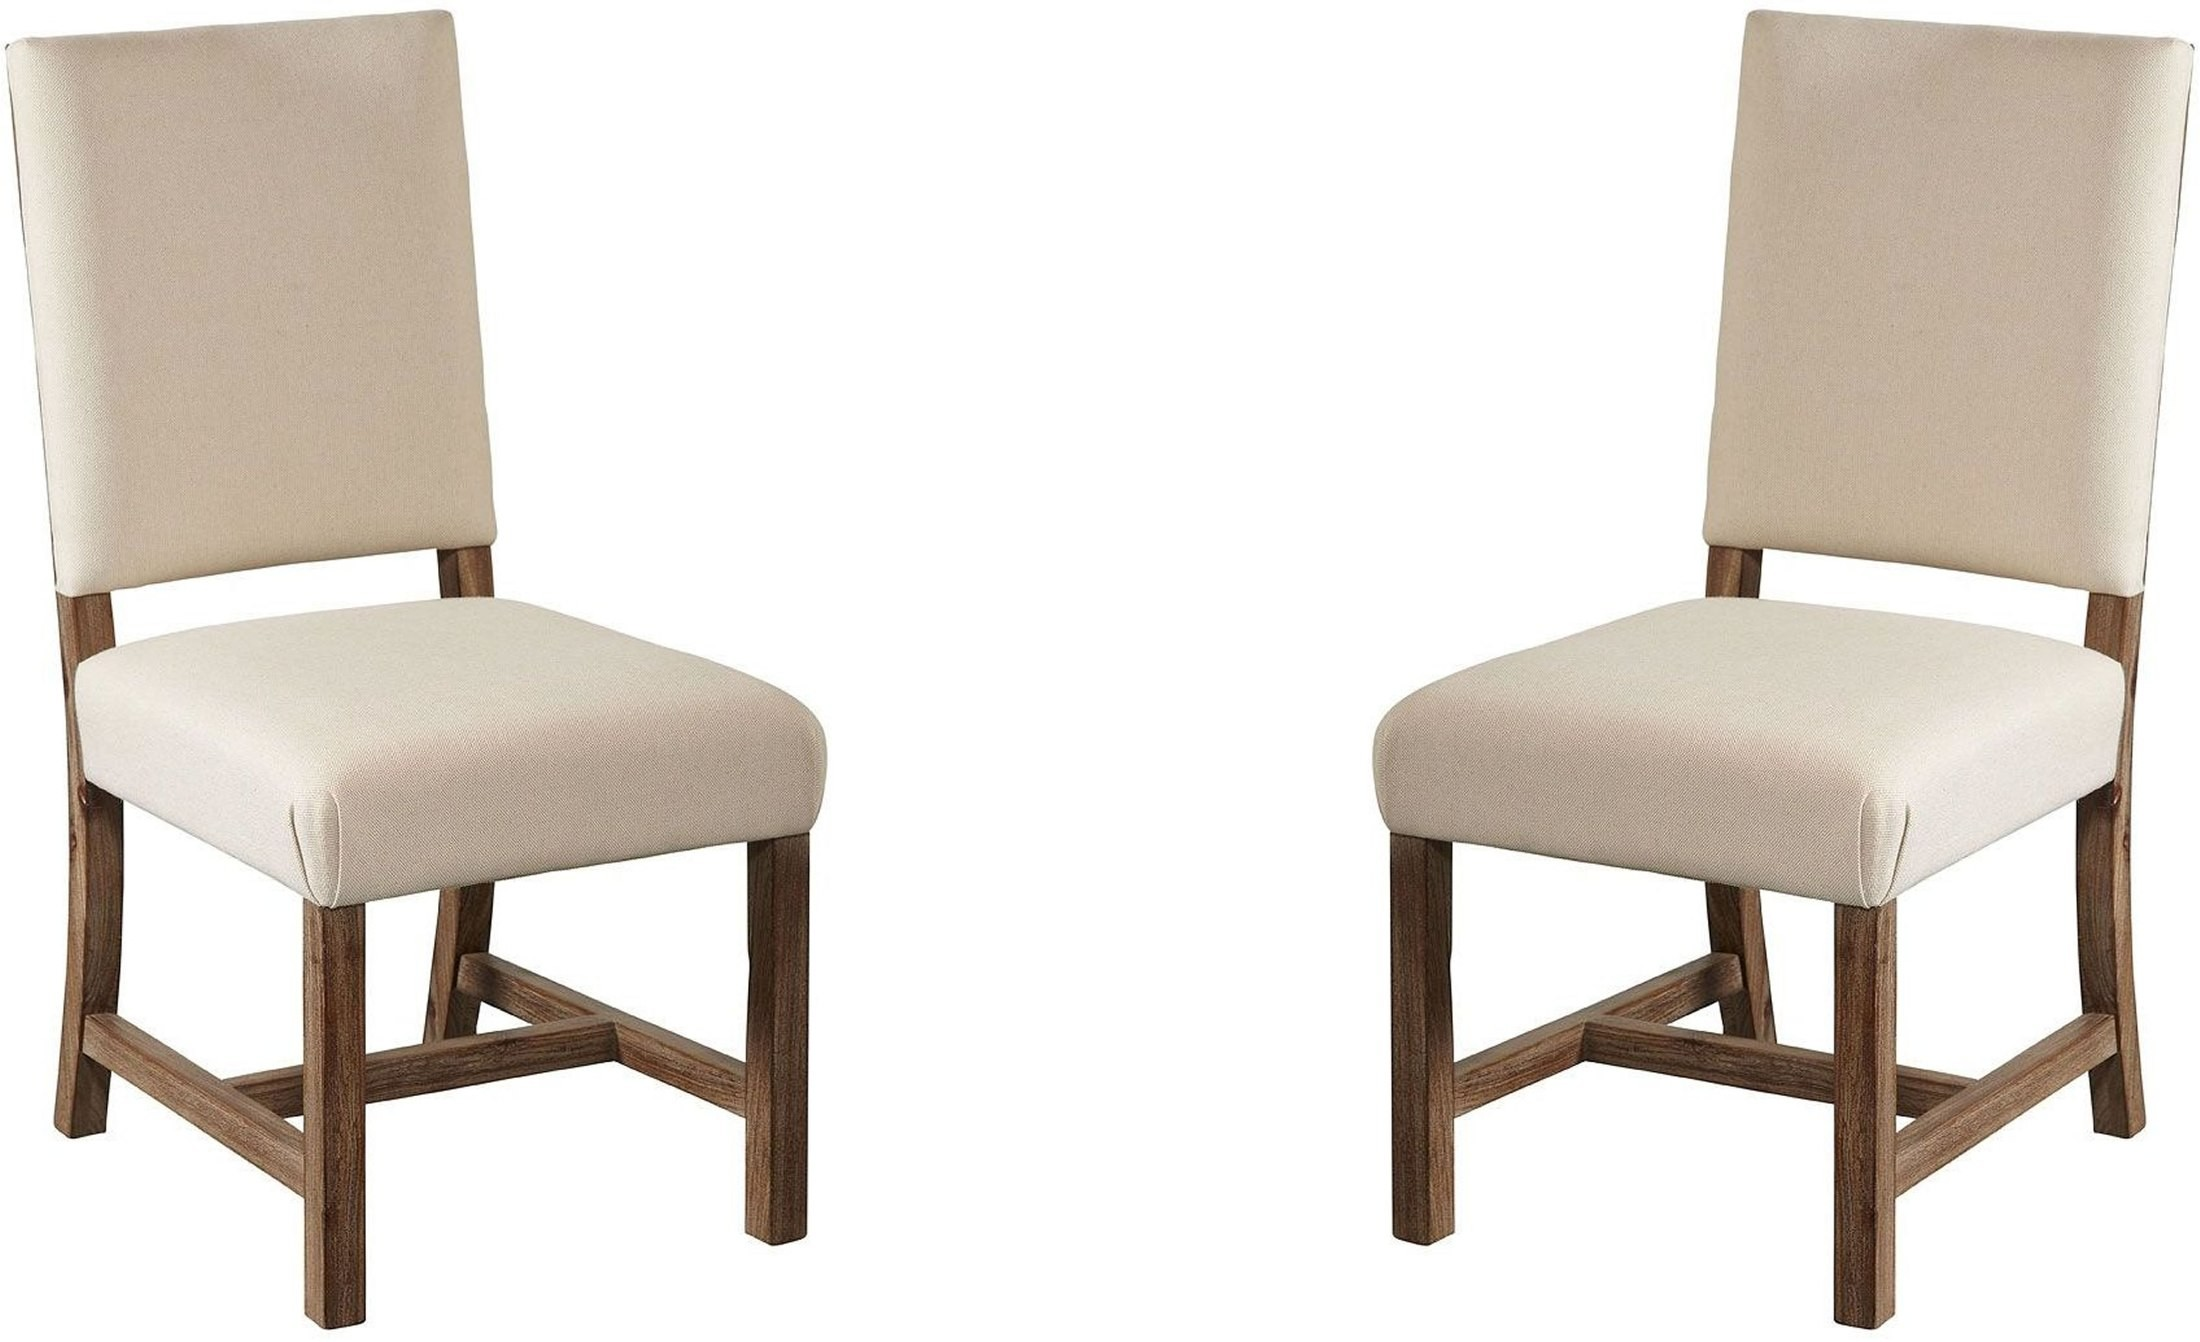 Dark Beach Upholstered Dining Chair Set Of 2 From Avalon